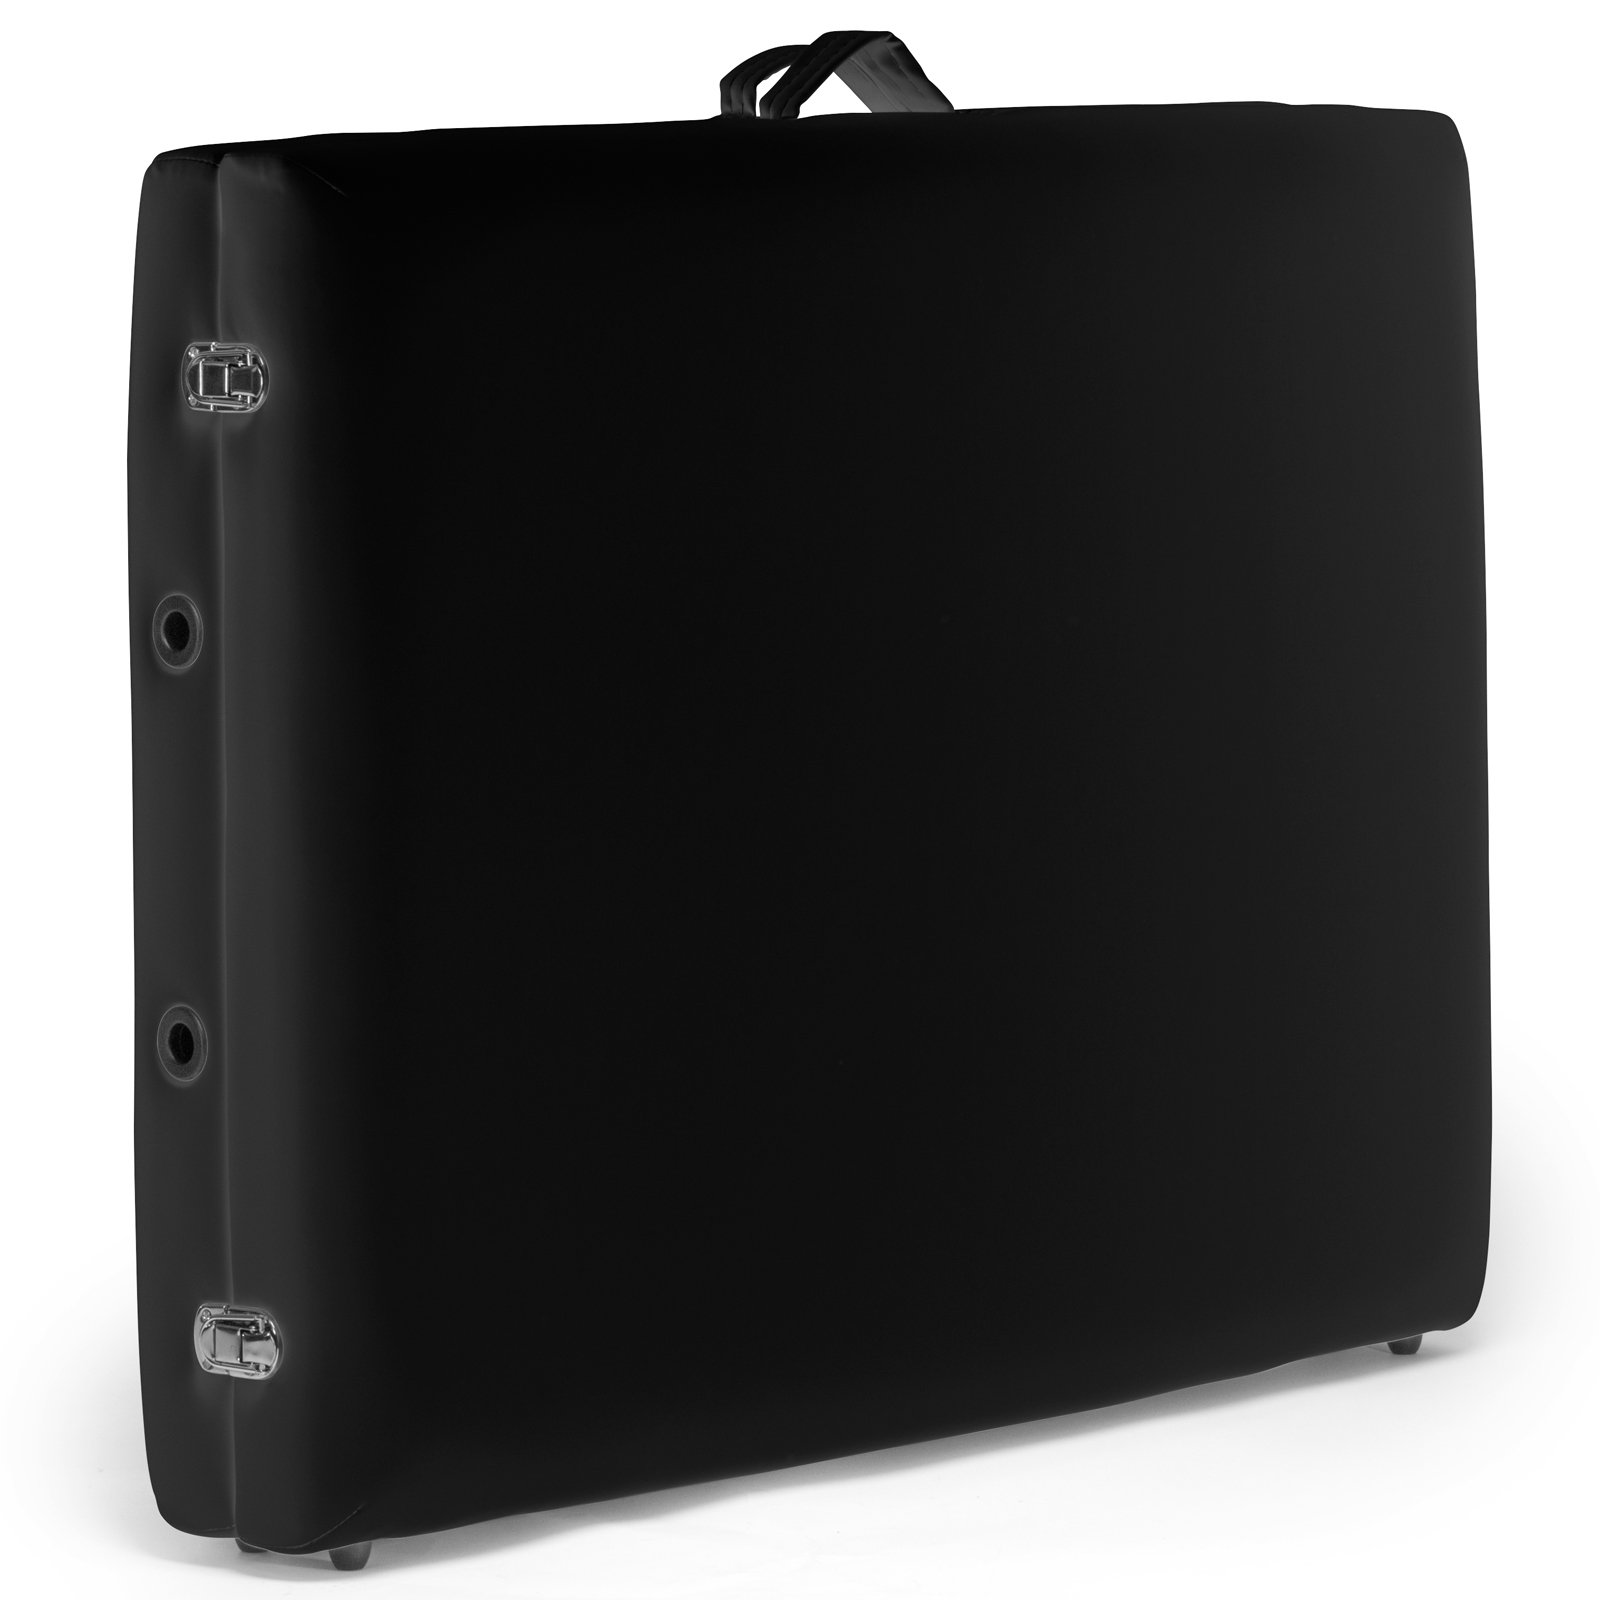 Saloniture Professional Portable Folding Massage Table with Carrying Case - Black by Saloniture (Image #4)